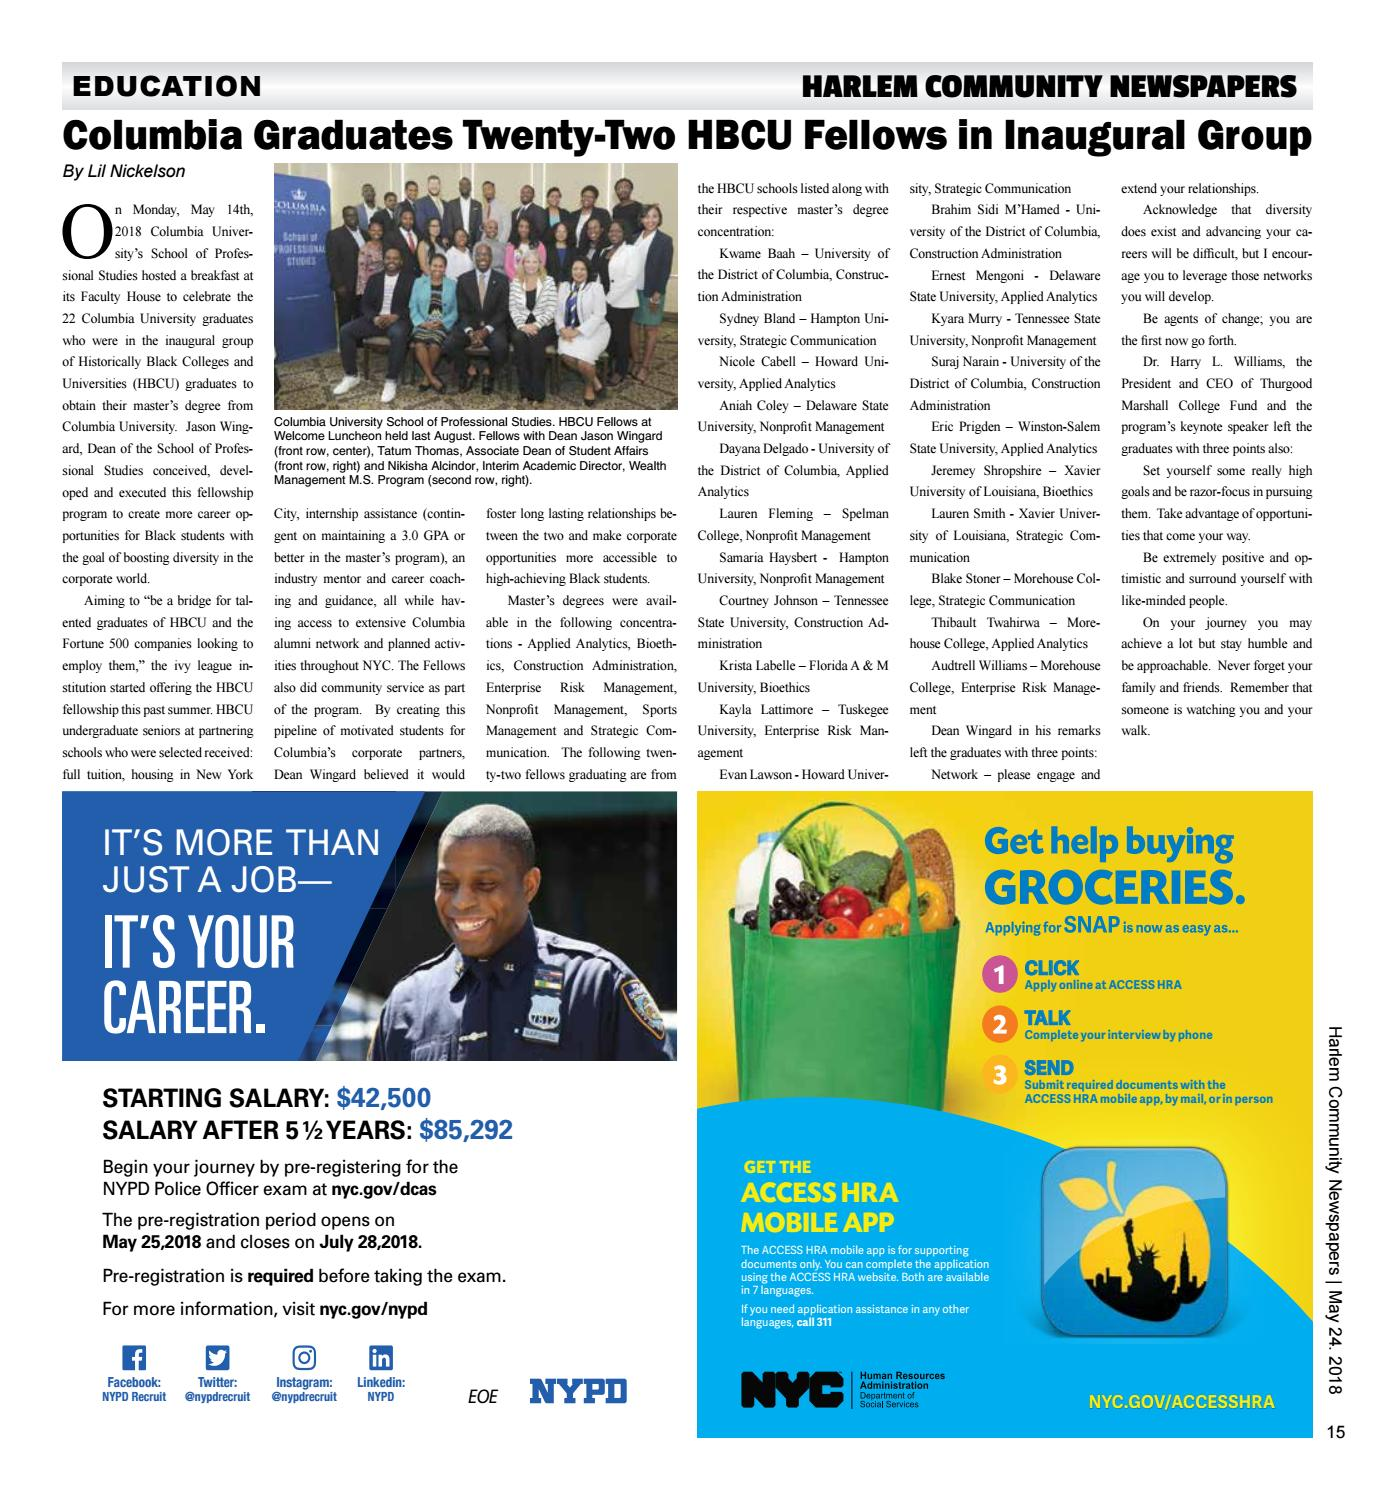 Harlem Community Newspapers | May 24, 2018 by Mike Kurov - issuu